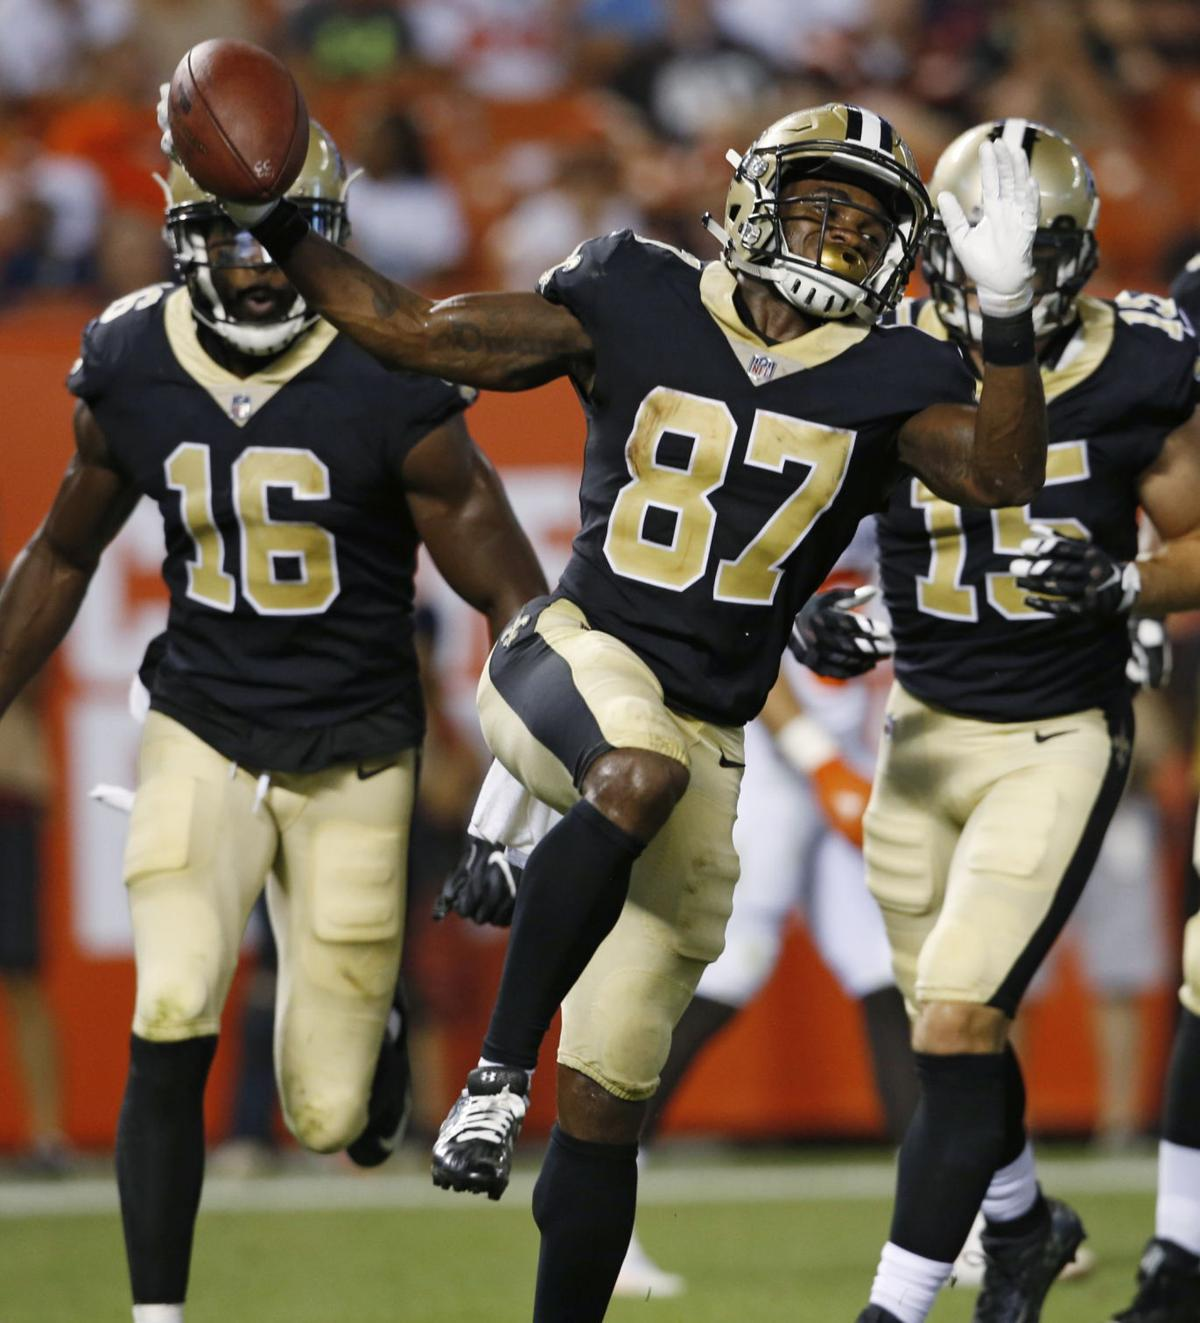 Source Saints looking to trade cornerback Delvin Breaux over